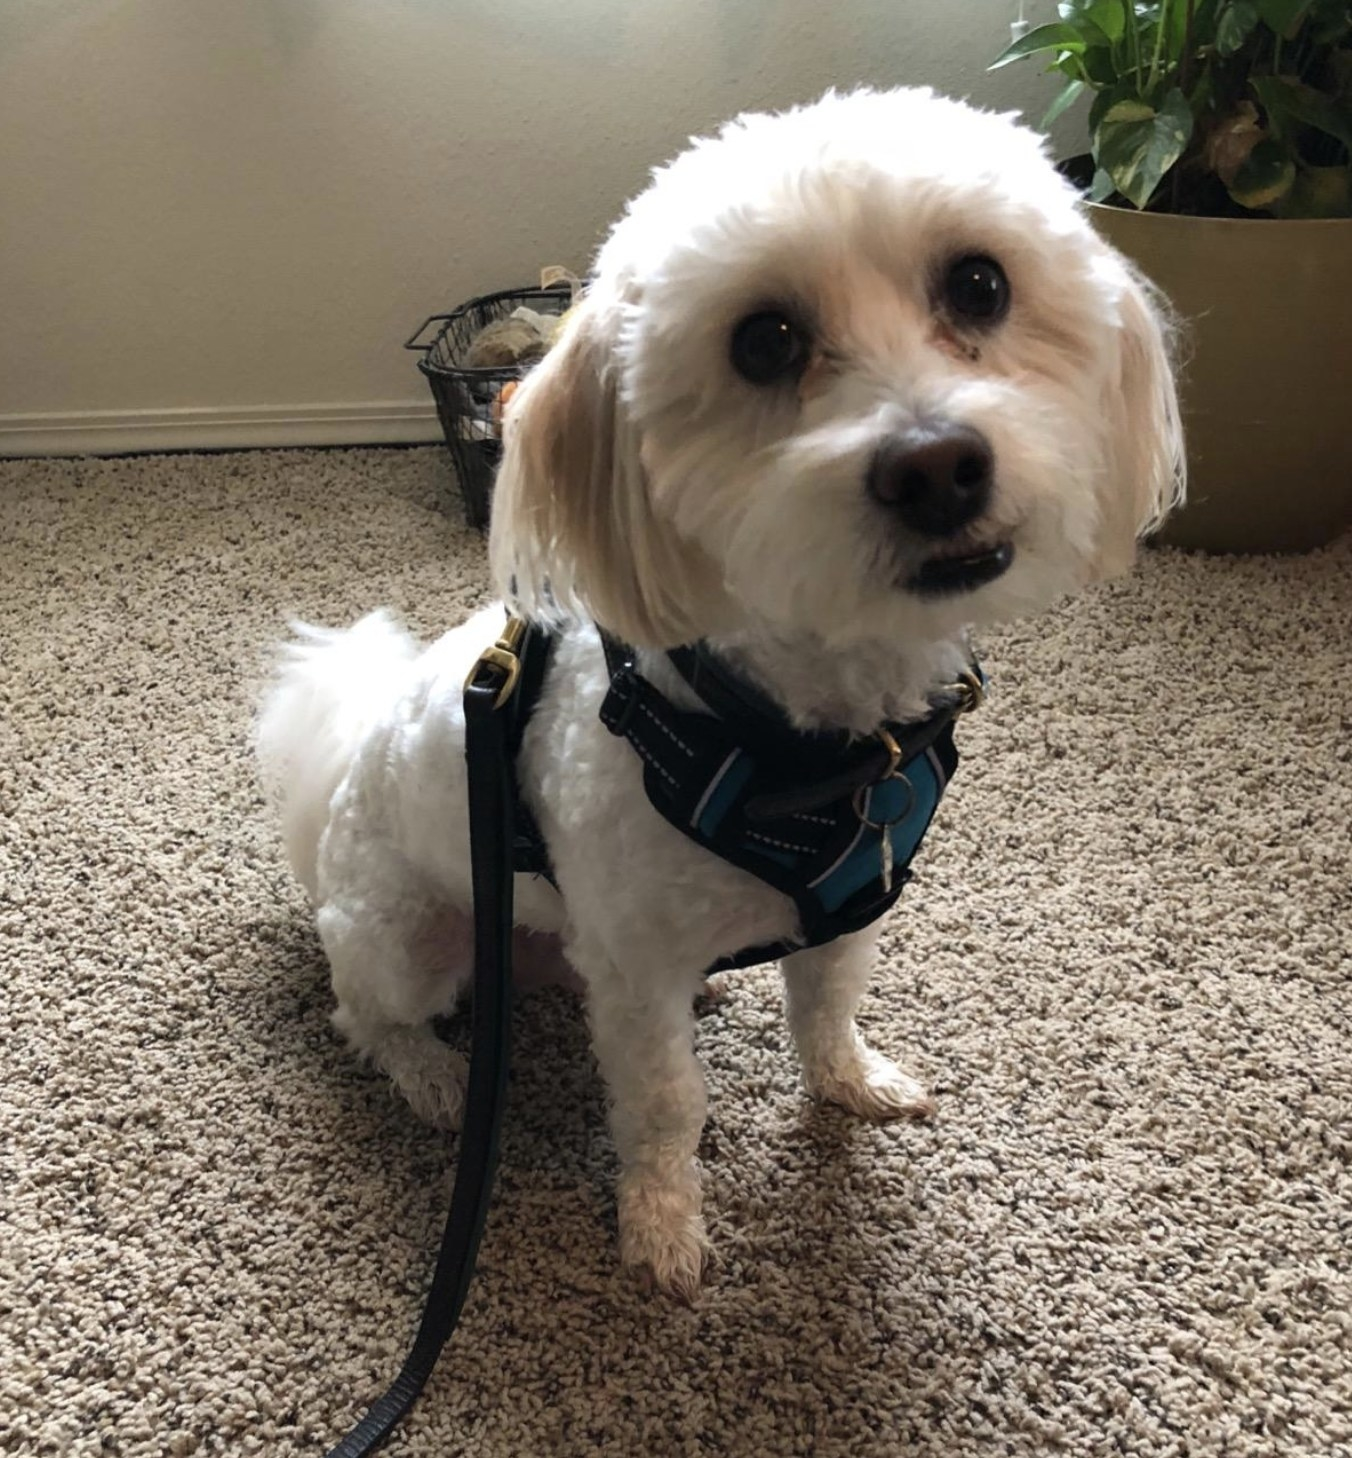 a havanese mix in a room with a harness on